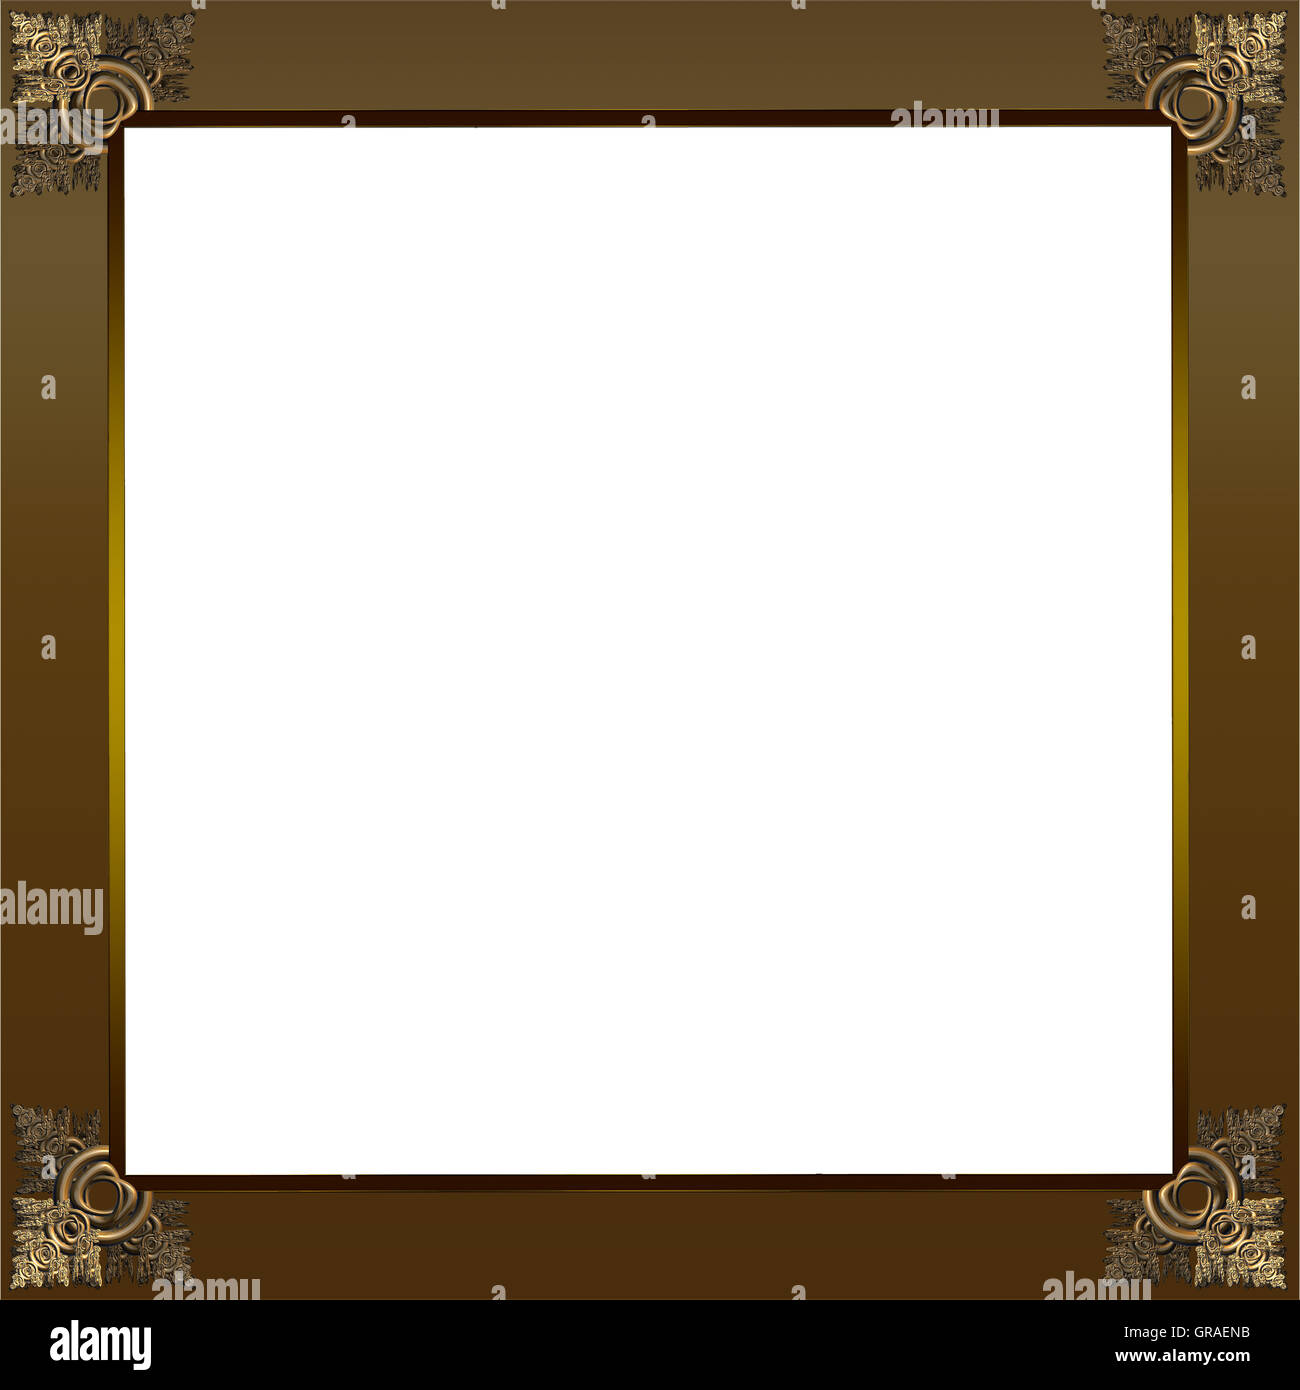 Exquisite picture frame or border with gold patterned corners and ...